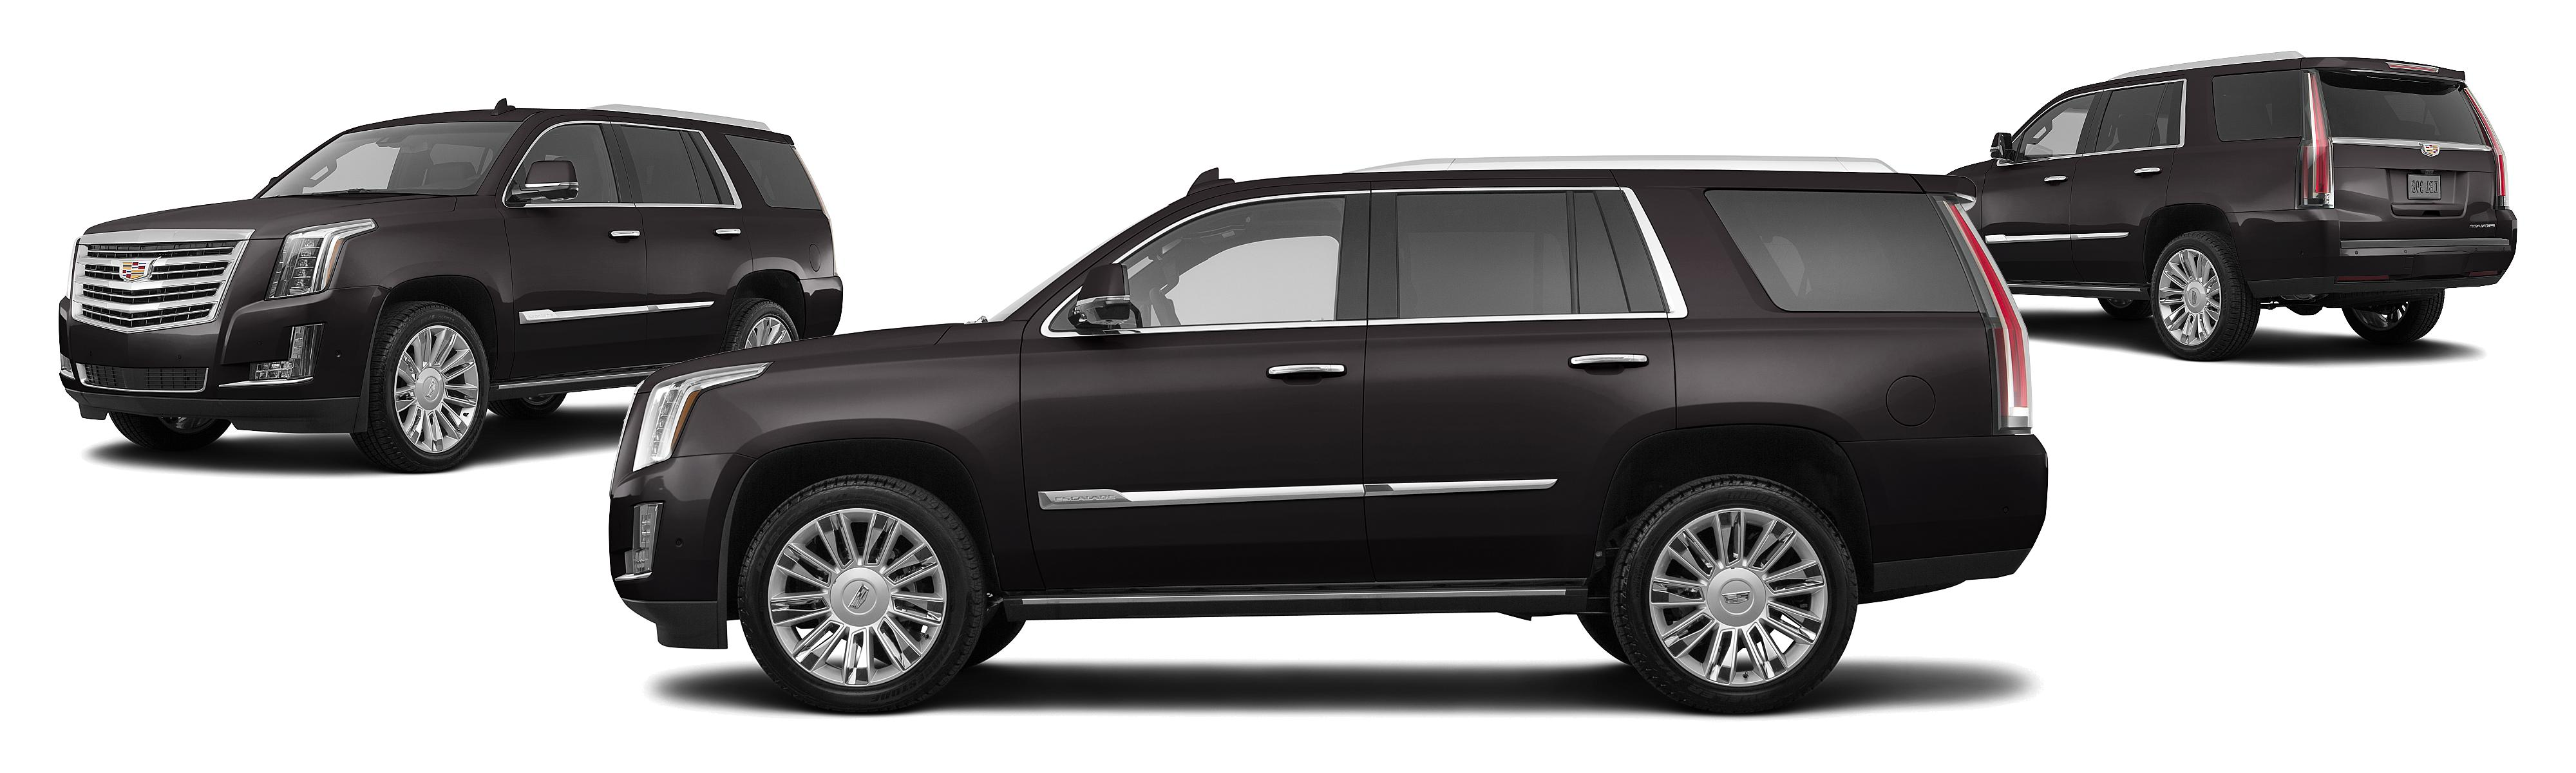 escalade accessories ecostyle dsc chauffeured transportation vehicles cadillac